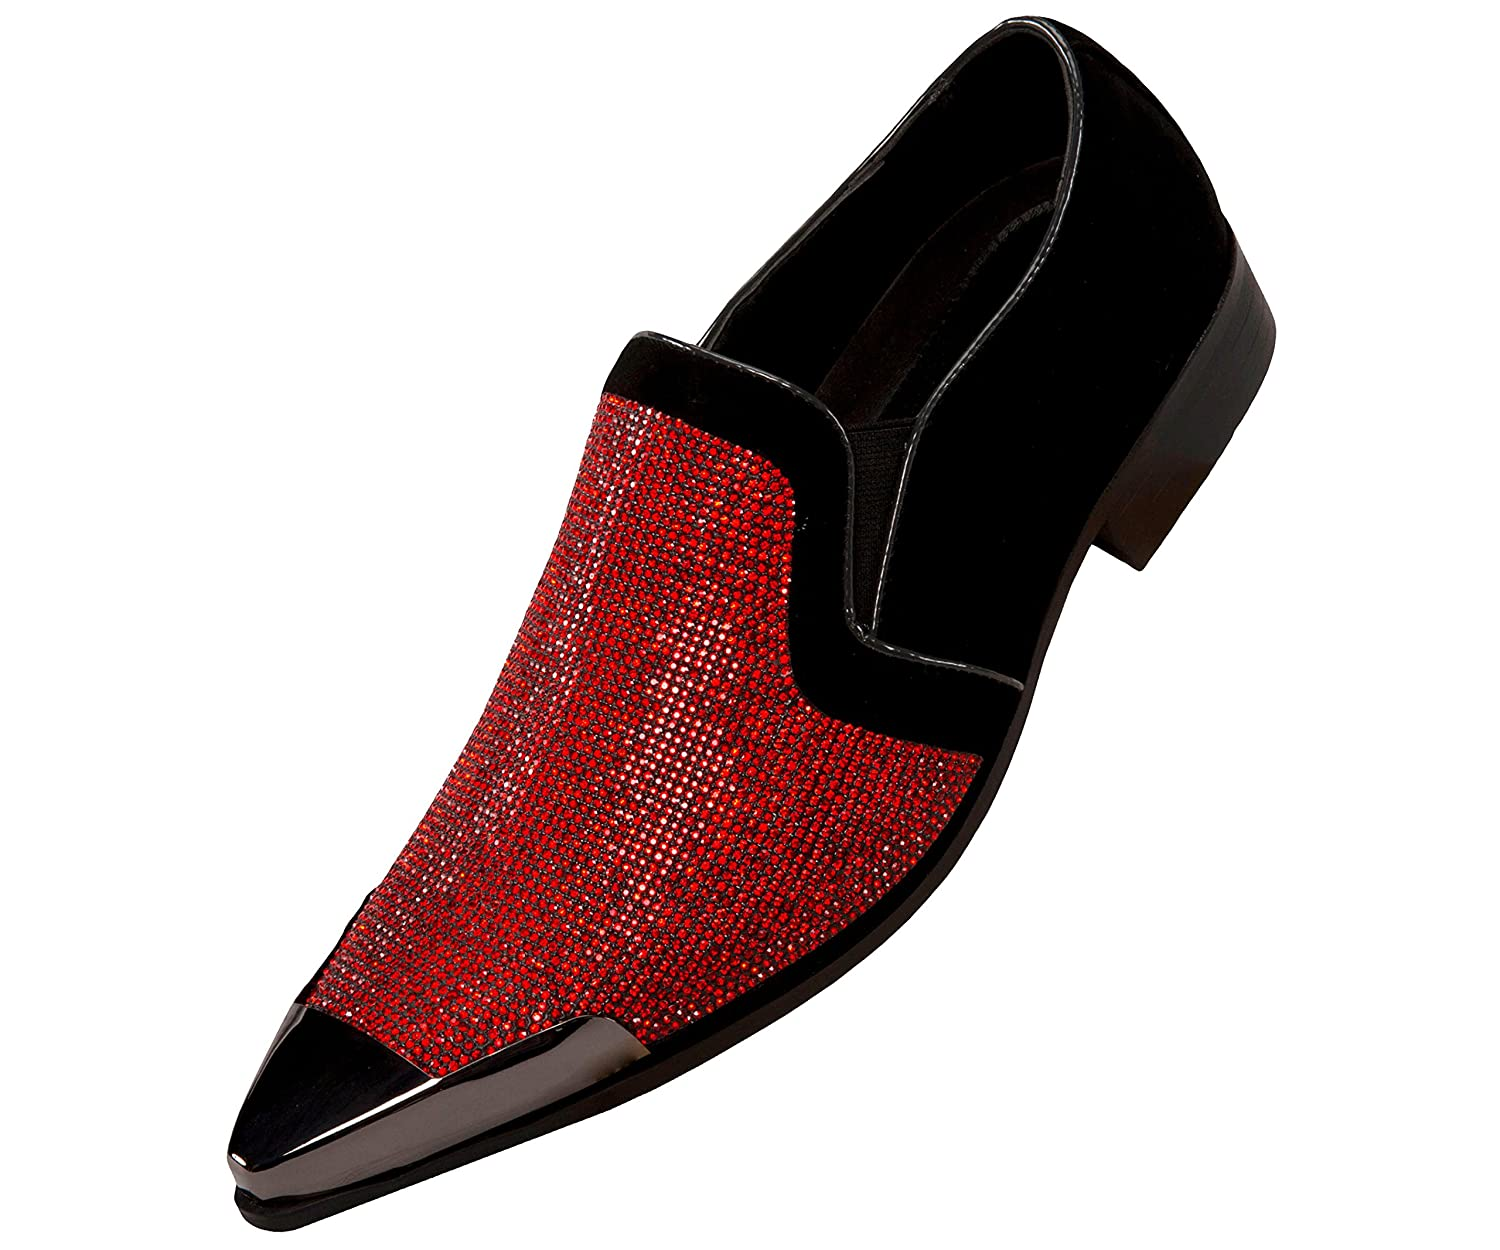 Bolano Mens Rhinestone Embellished and Faux Suede Trim with Metal Tip Dress Shoe, Comfortable Slip-On B07B1HNVWK 12 D(M) US|Black/Red